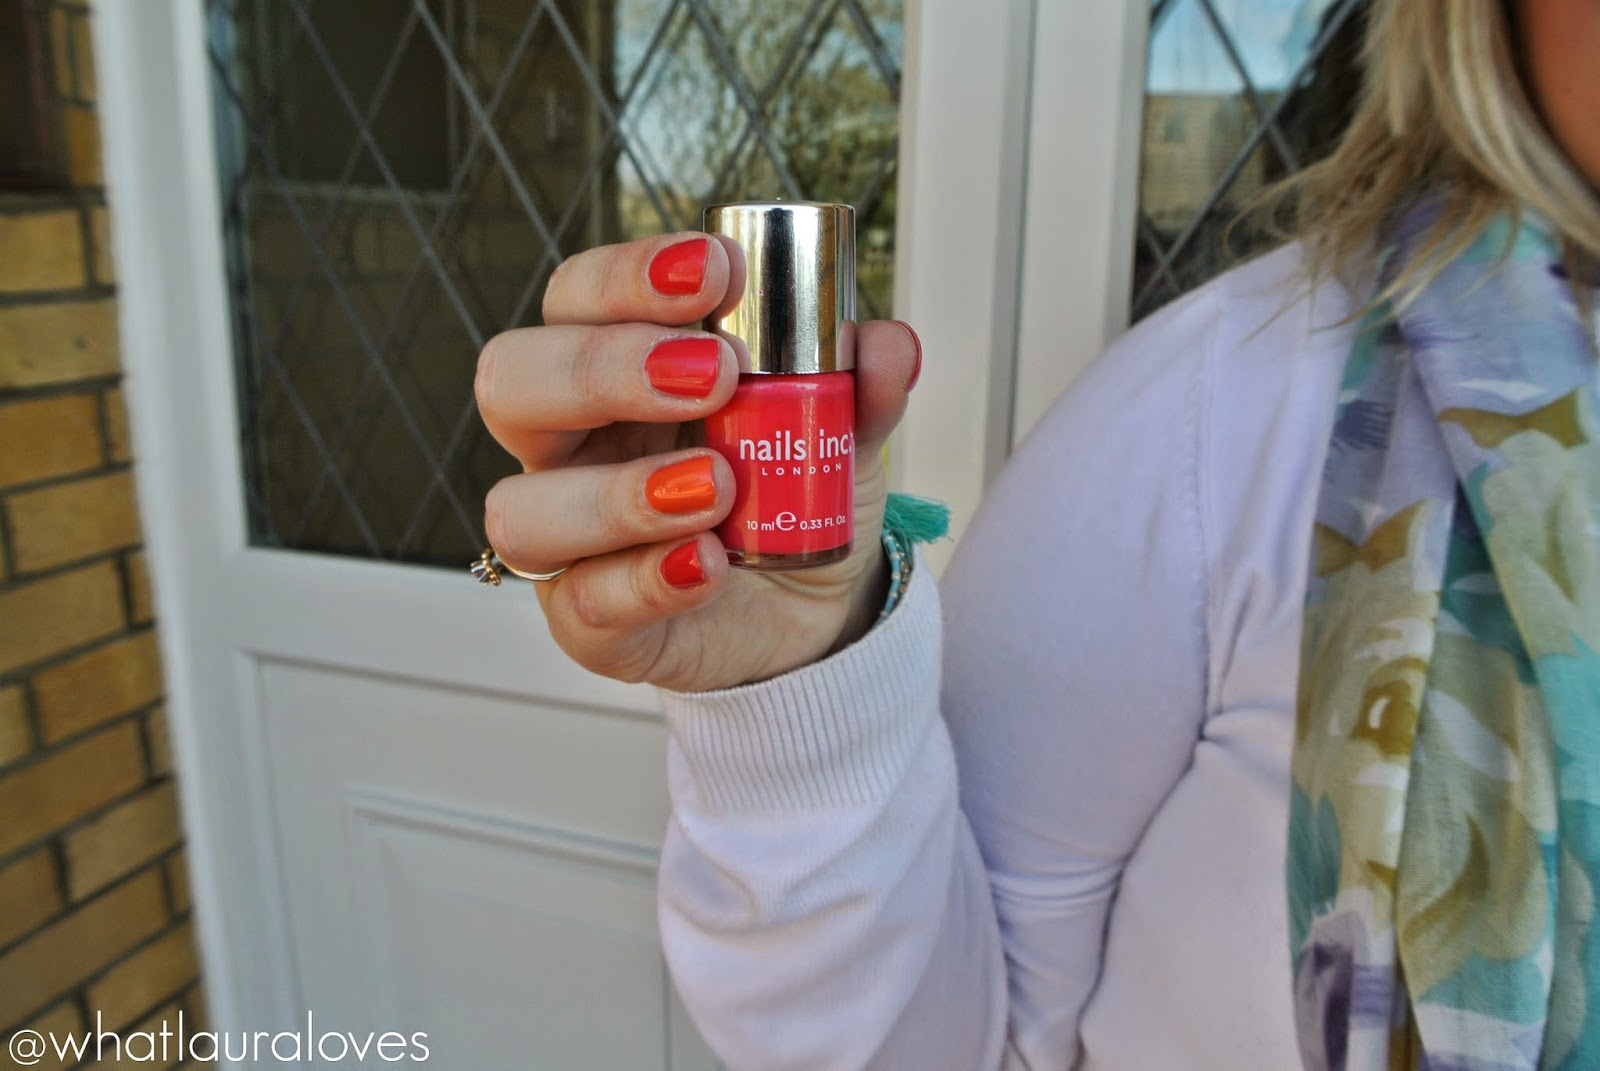 Nails Inc Brook Street Nail Polish